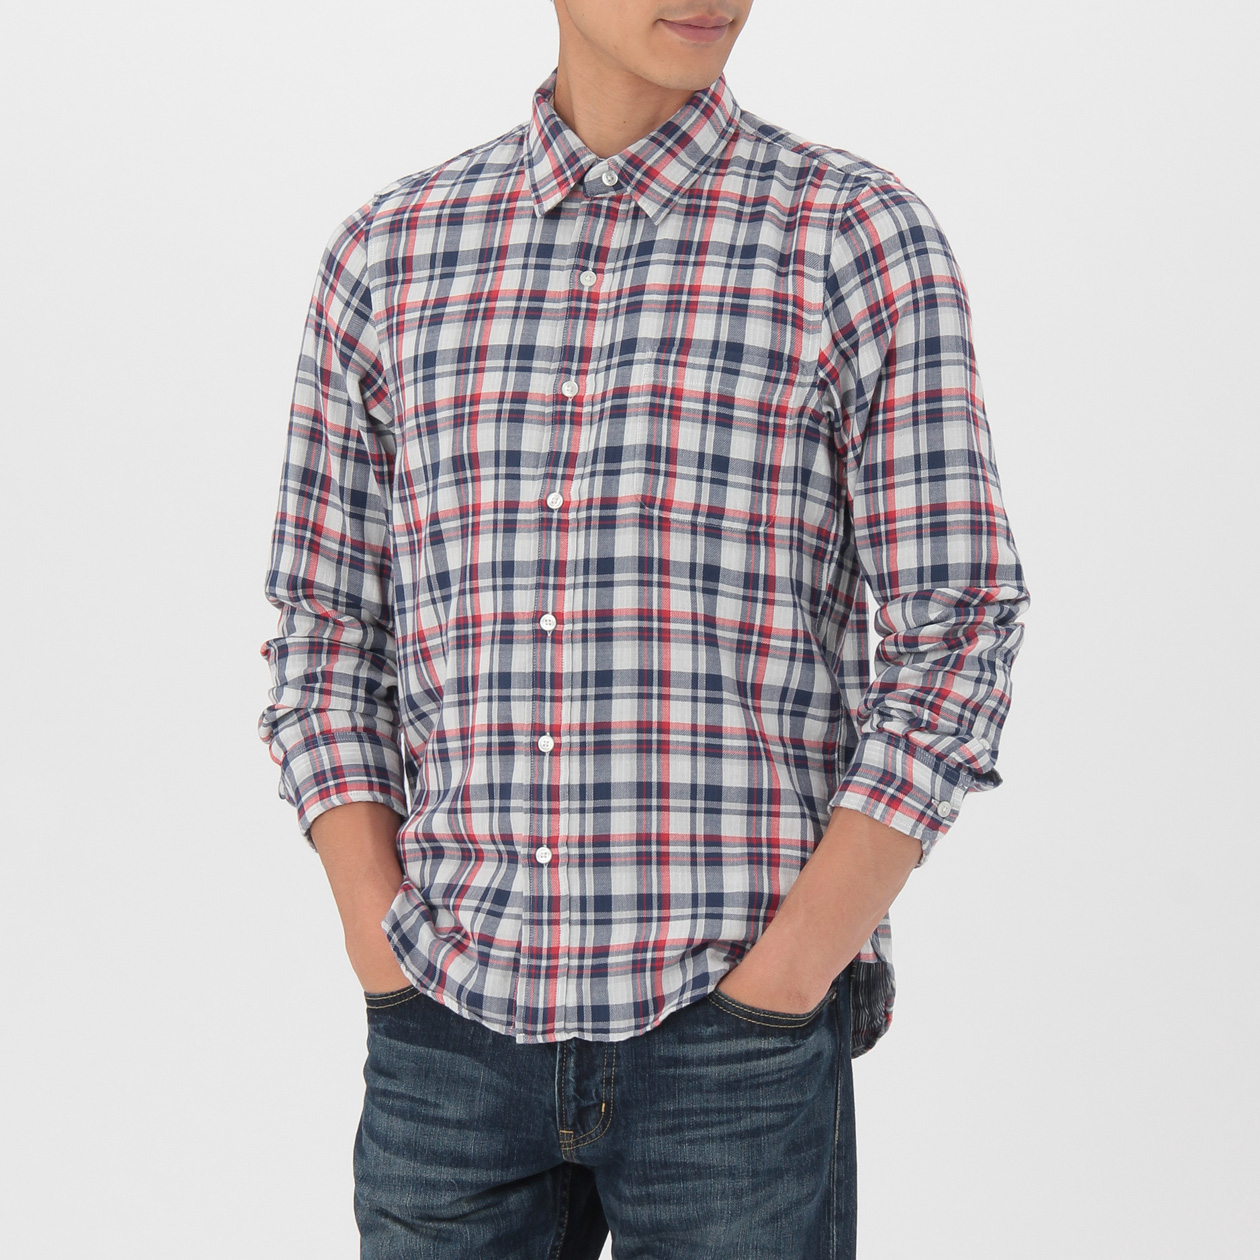 OGC DOUBLE GAUZE CHECK SHIRT